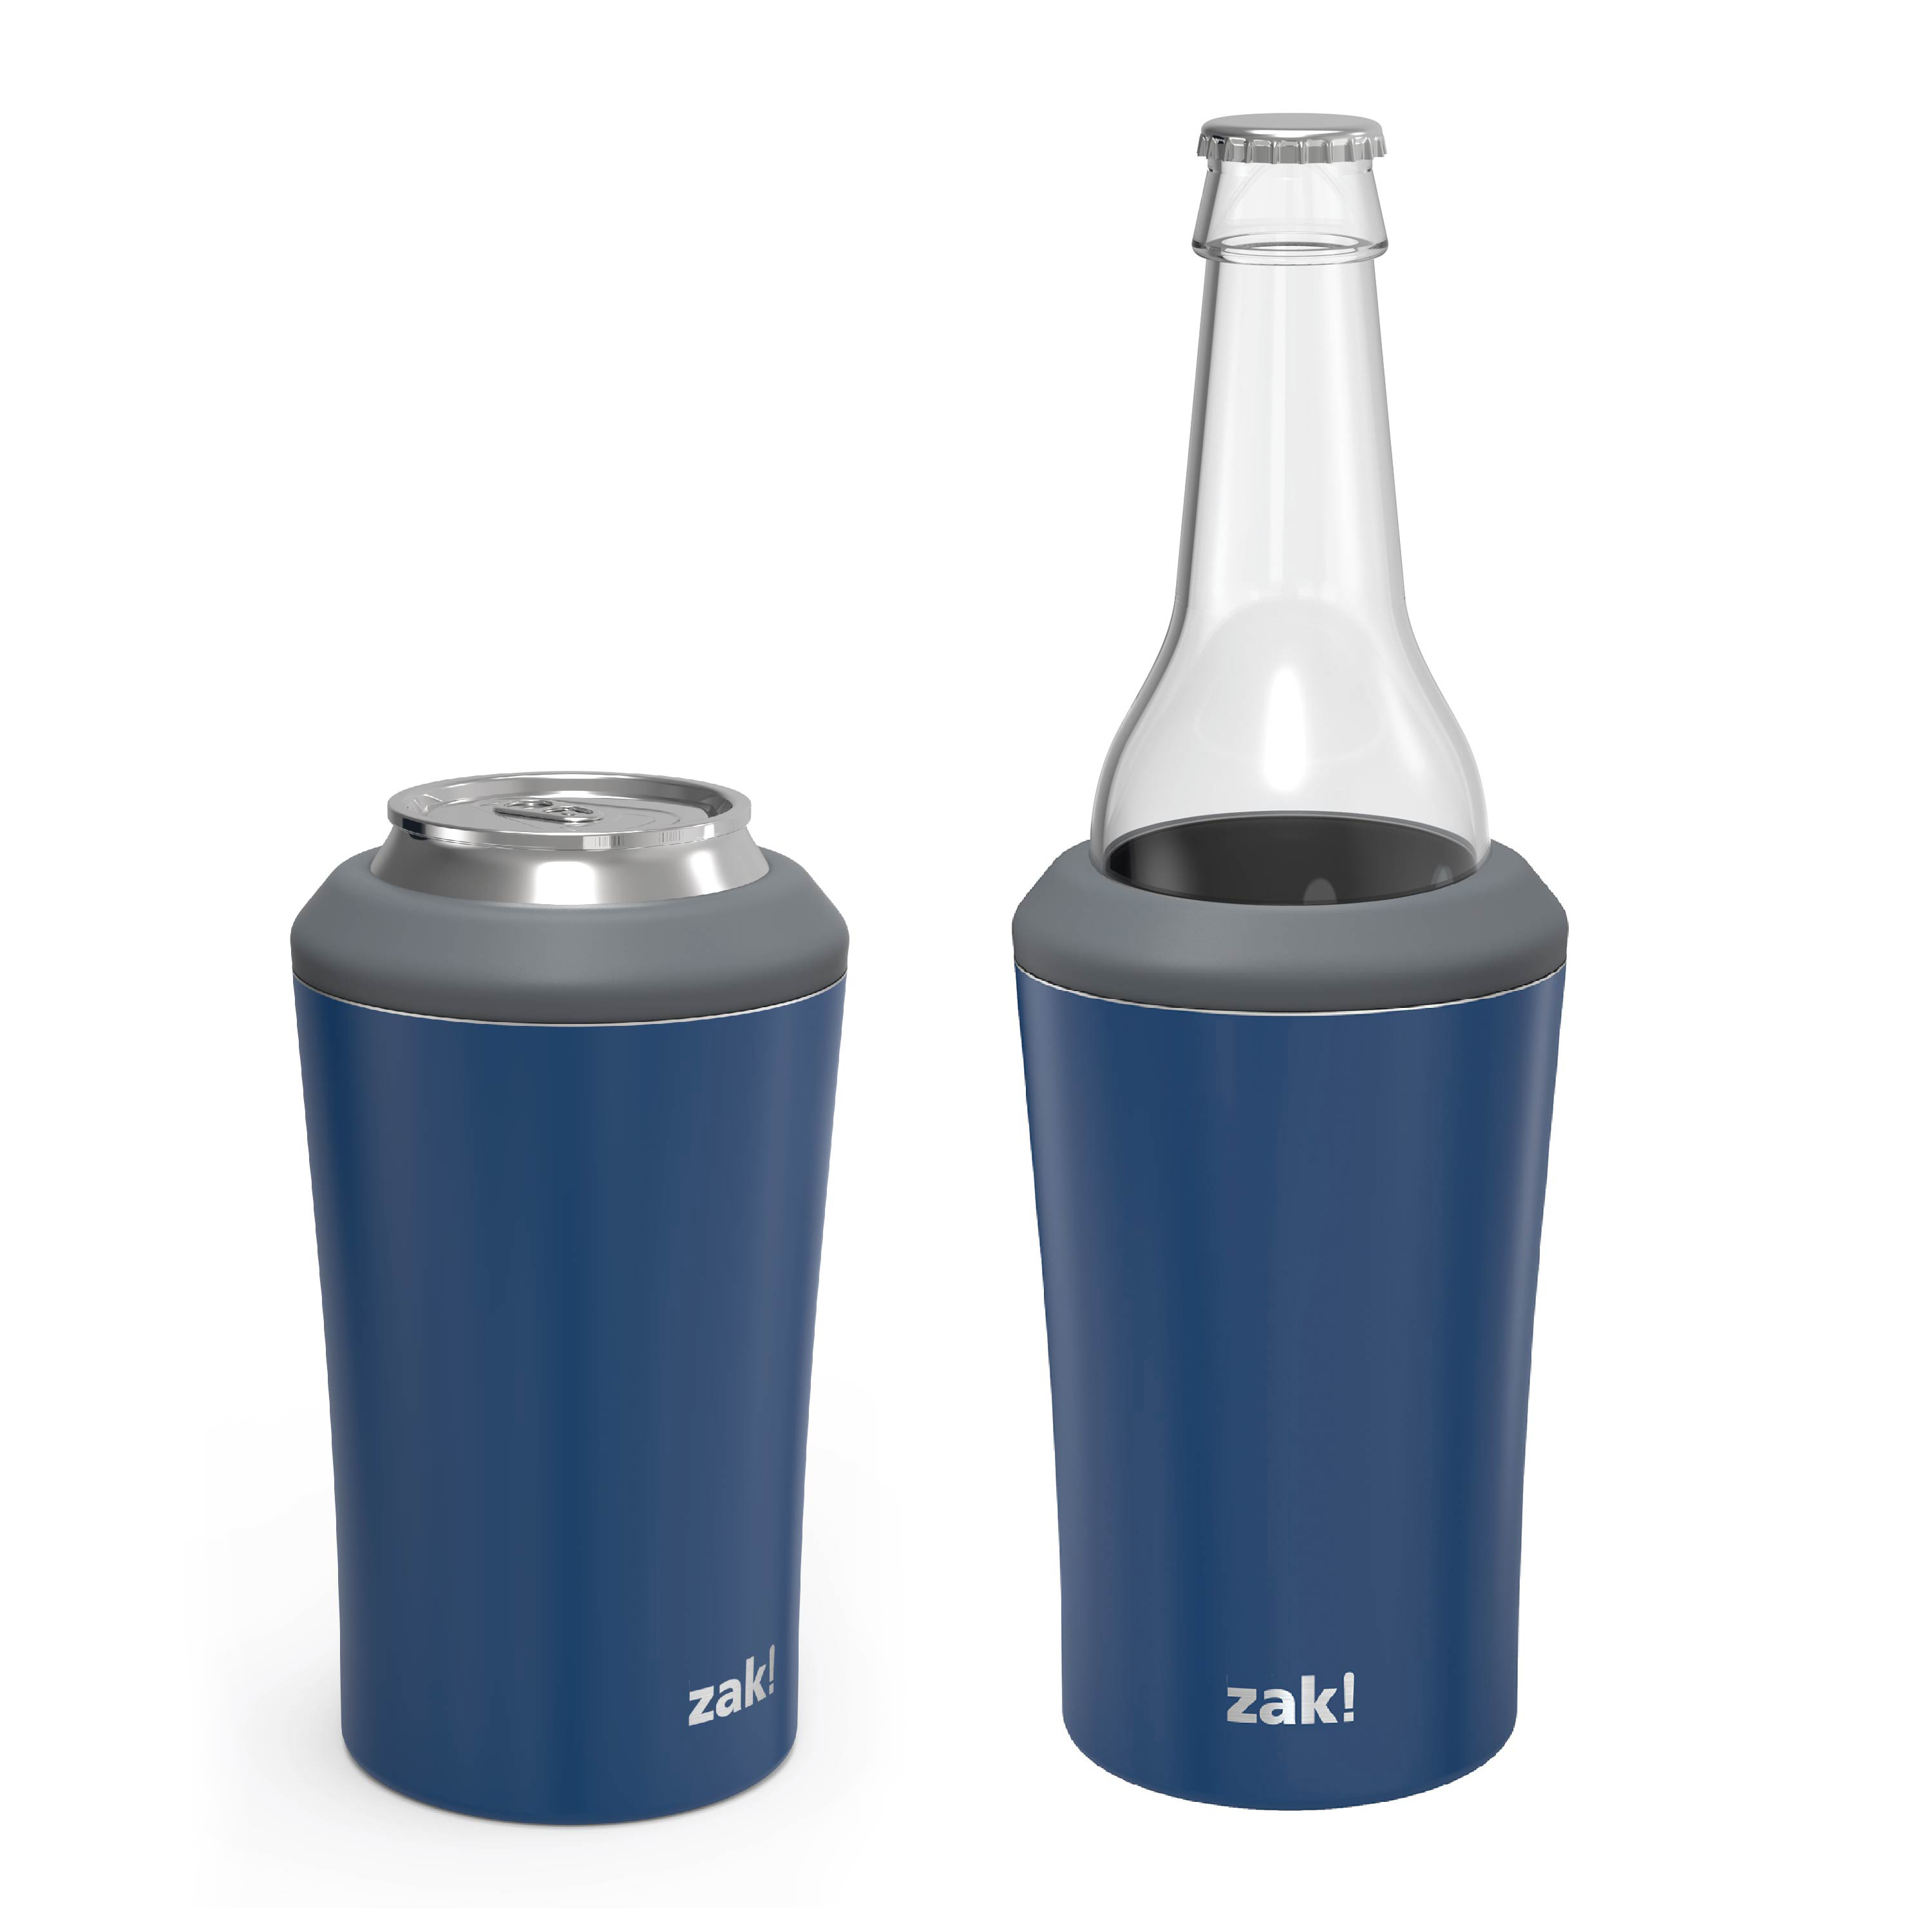 Zak Hydration 12 ounce Double Wall Stainless Steel Can and Bottle Cooler with Vacuum Insulation, Indigo slideshow image 3